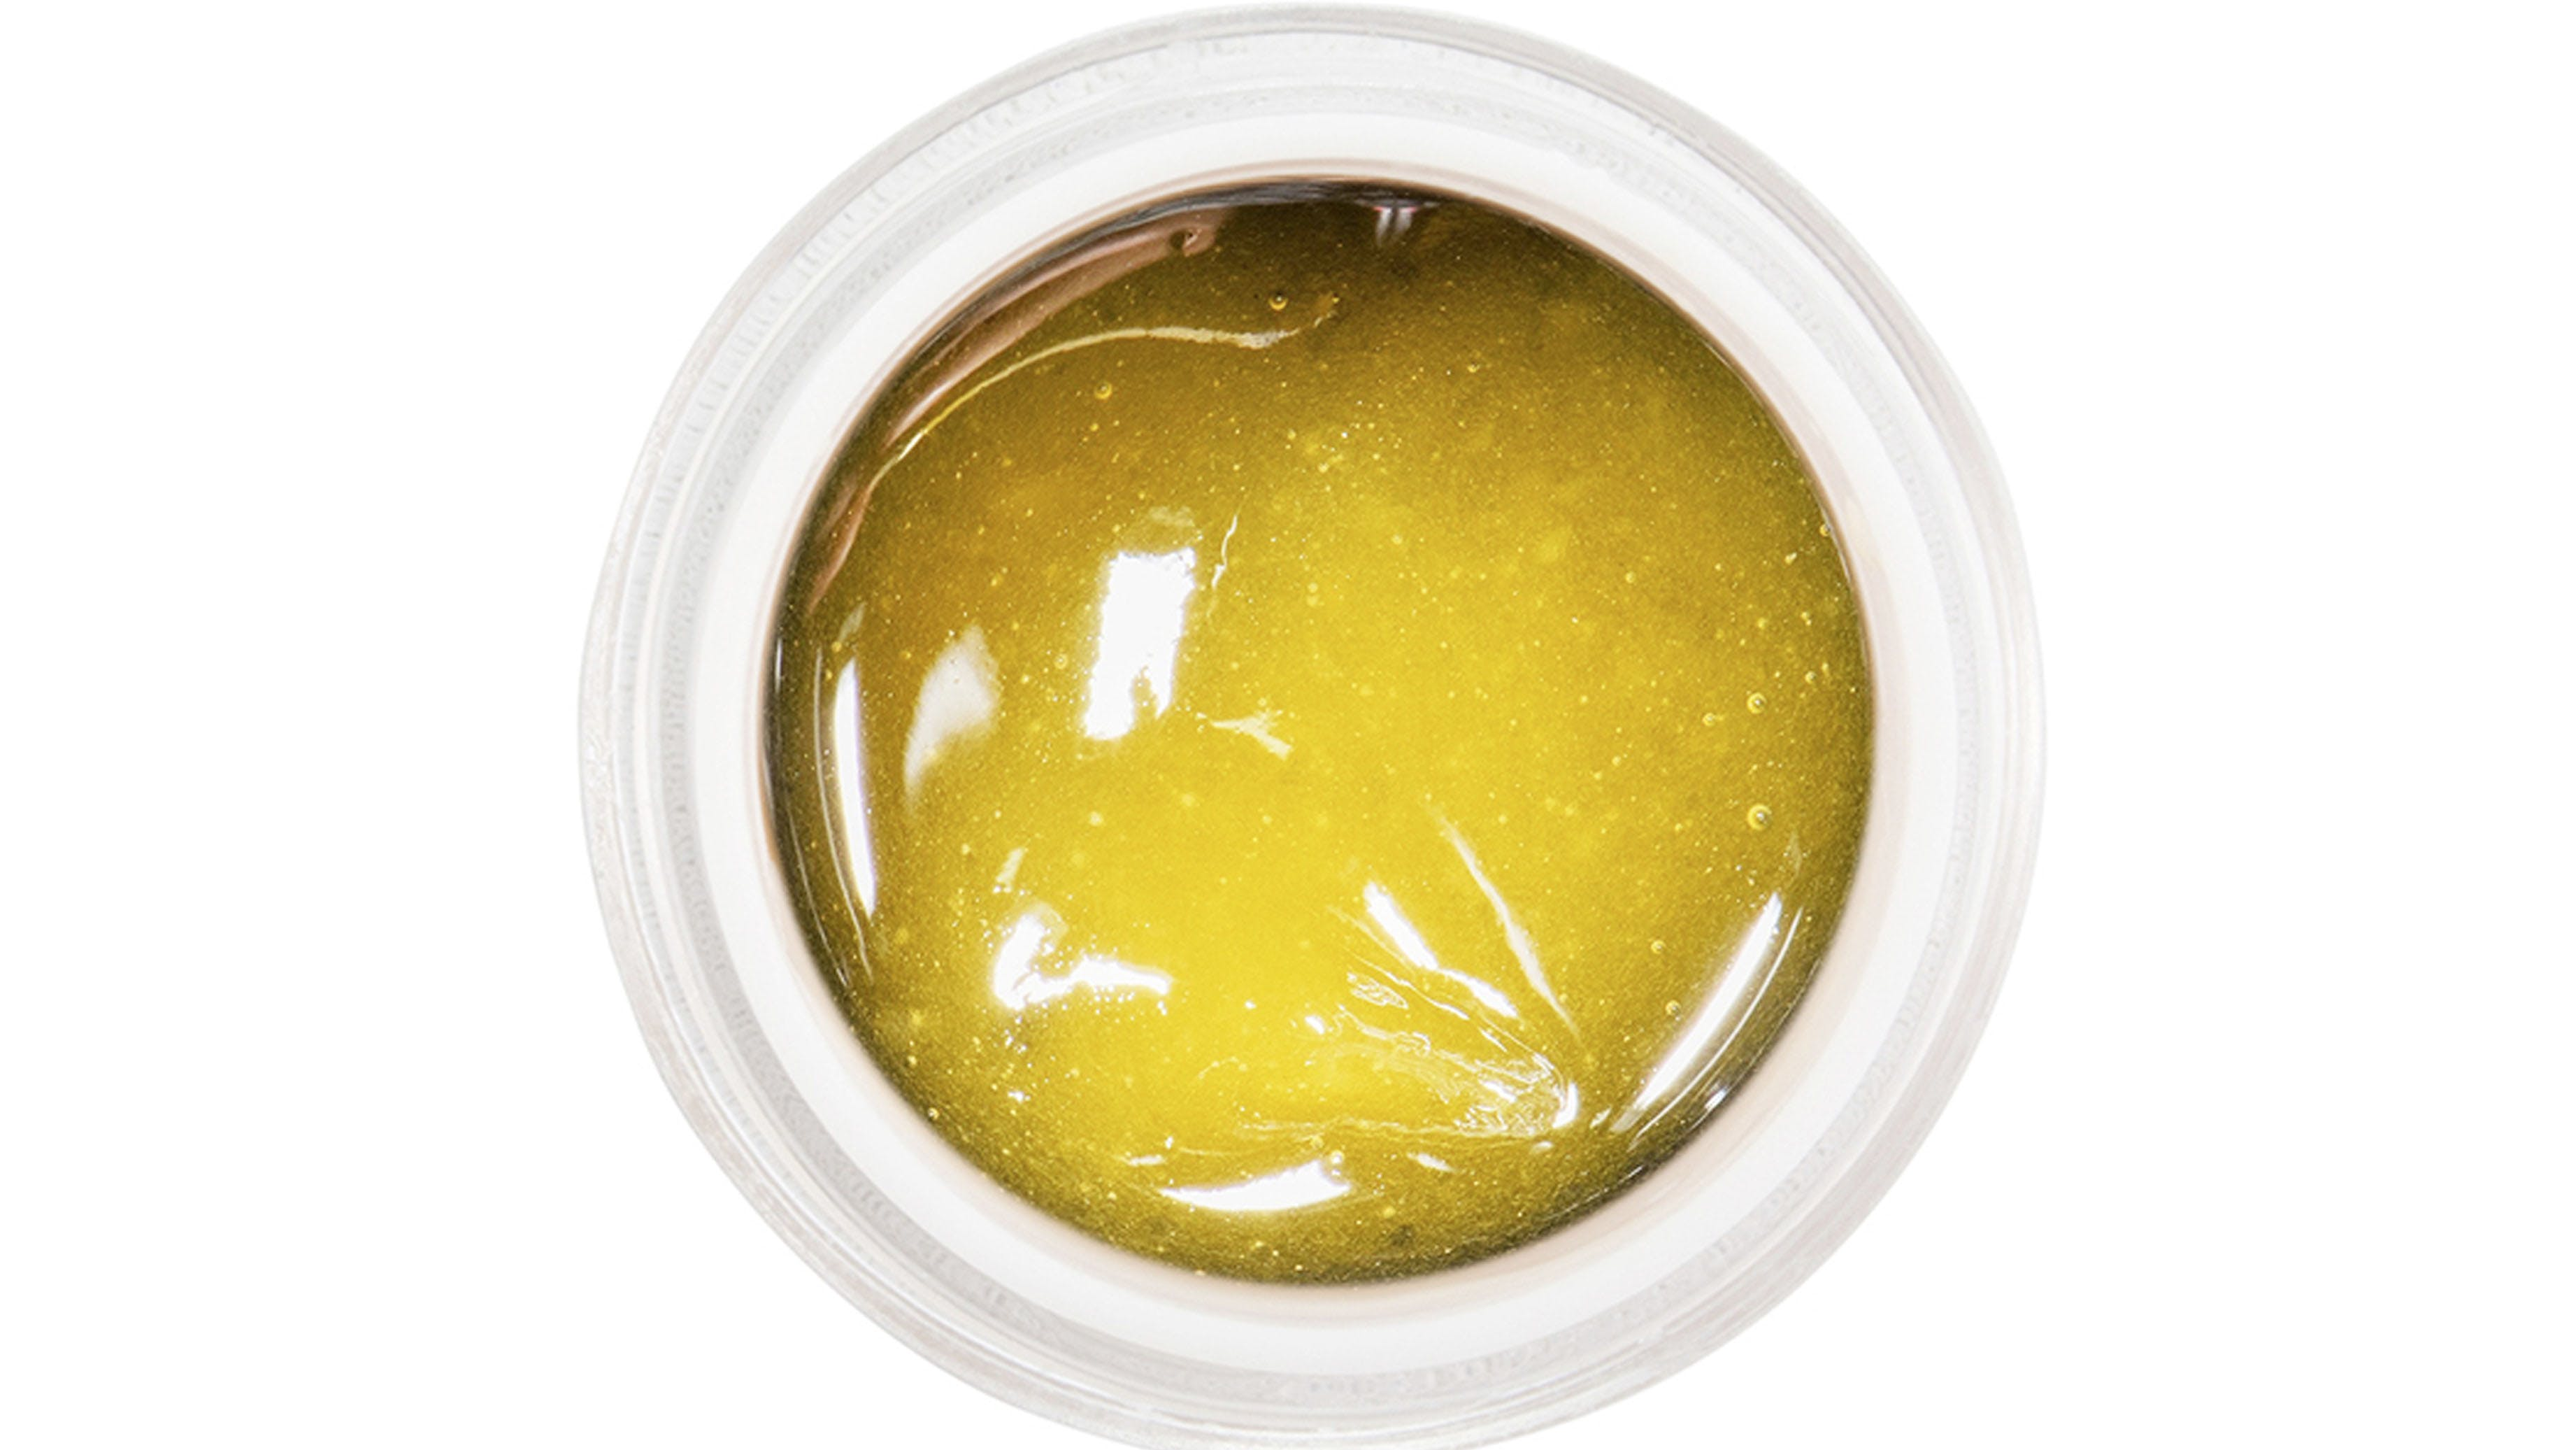 concentrate-special-25-25-off-gold-nugget-extracts-live-resin-sauce